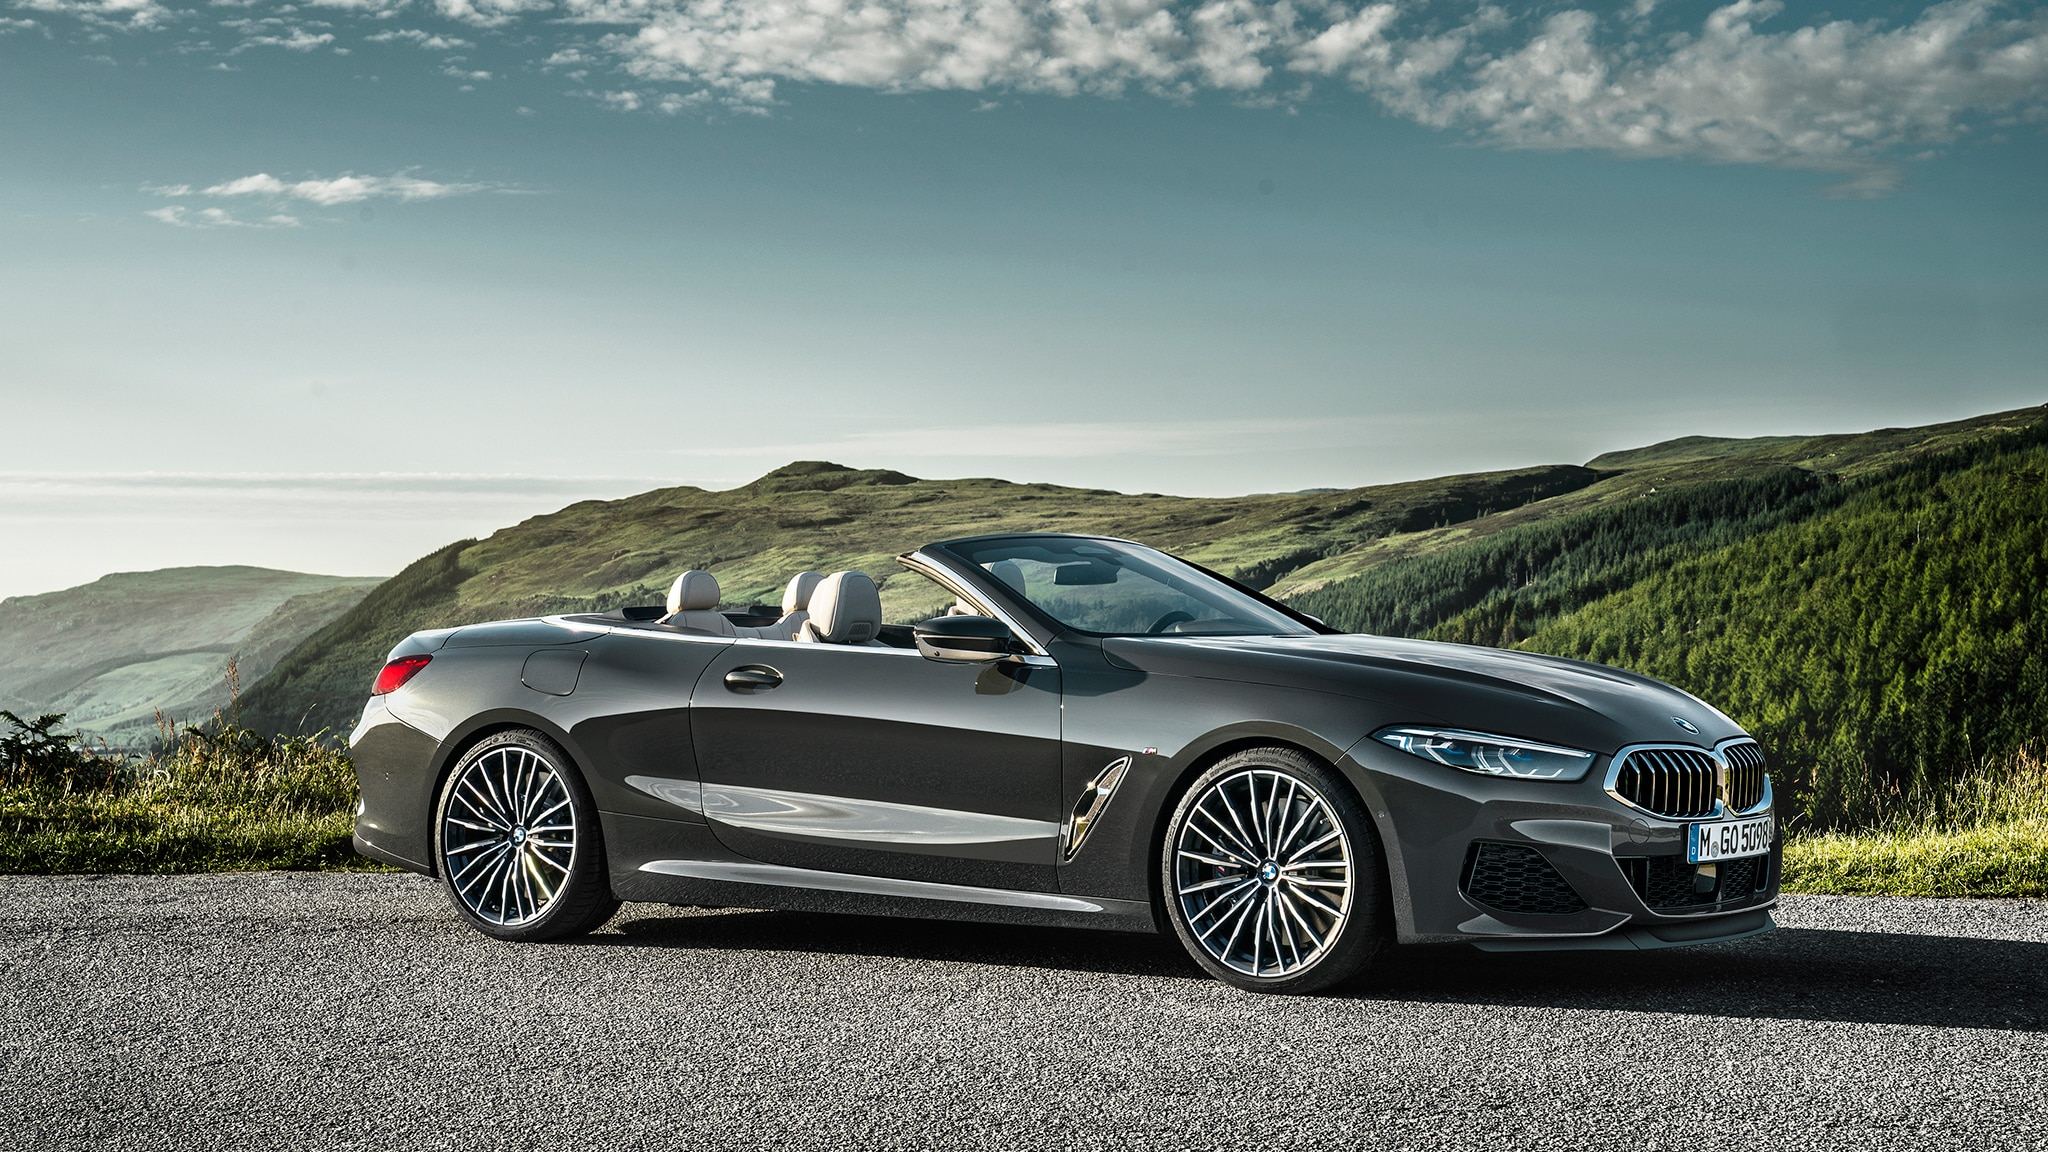 2019 BMW M850i Convertible Side Front View With Clouds